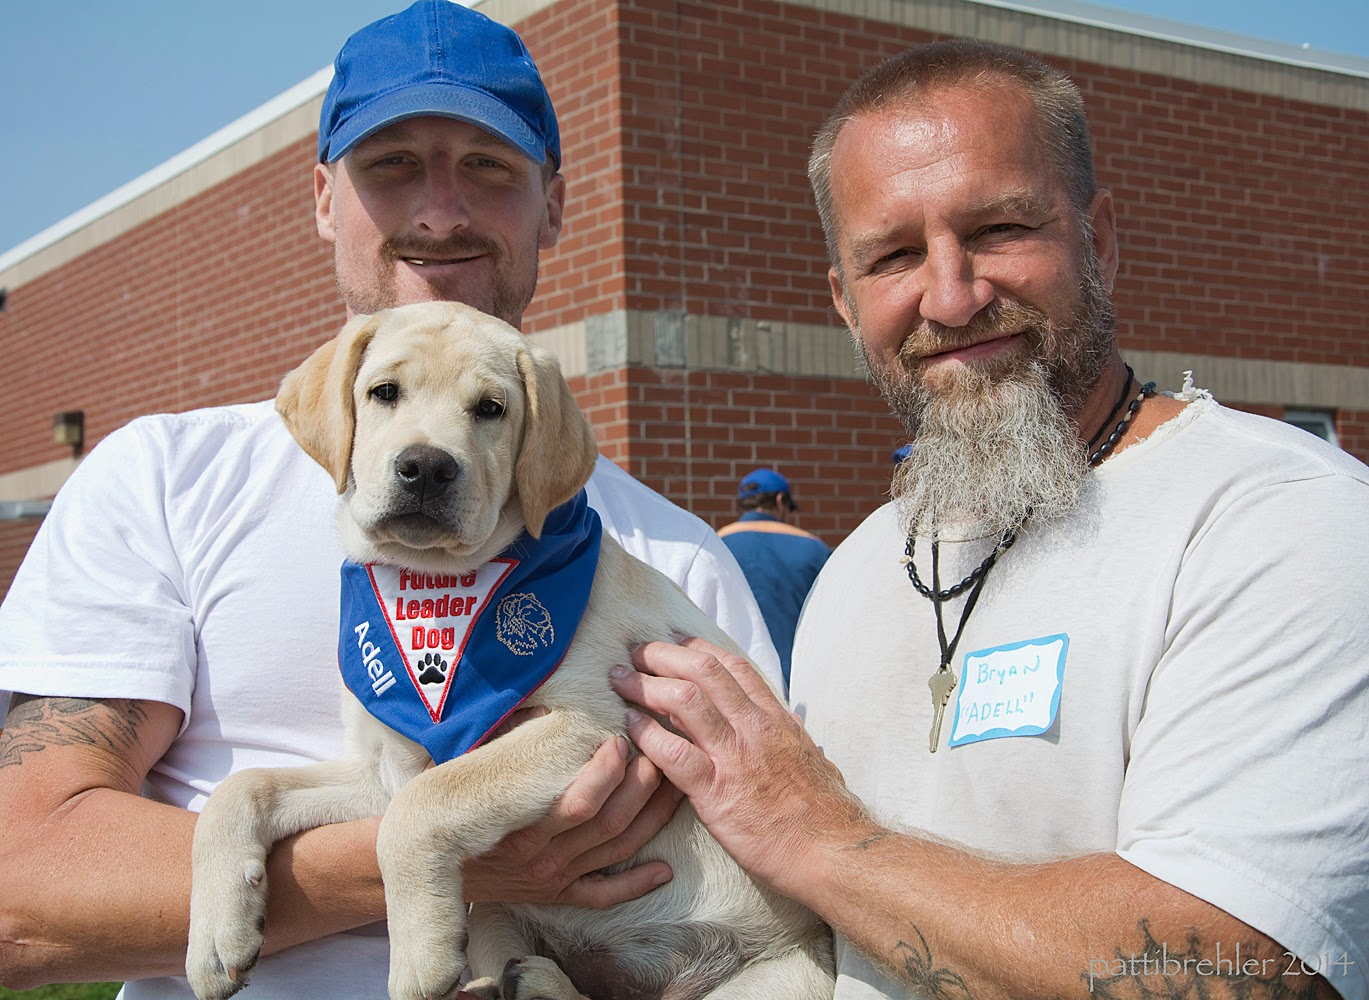 "Two men are standing in front of a brick building looking at the camera and smiling. They are wearing white t-shirts. The man on the left has a blue baseball cap on his head and is cradling a small yellow lab puppy in his arms. The man on the right is resting his left hand on the puppy's side. The puppy's front legs are hanging over the man on the left's right forearm. The puppy is looking at the camera and is wearing the blue Future Leader Dog bandana with the name ""Adell"" embroidered in white."